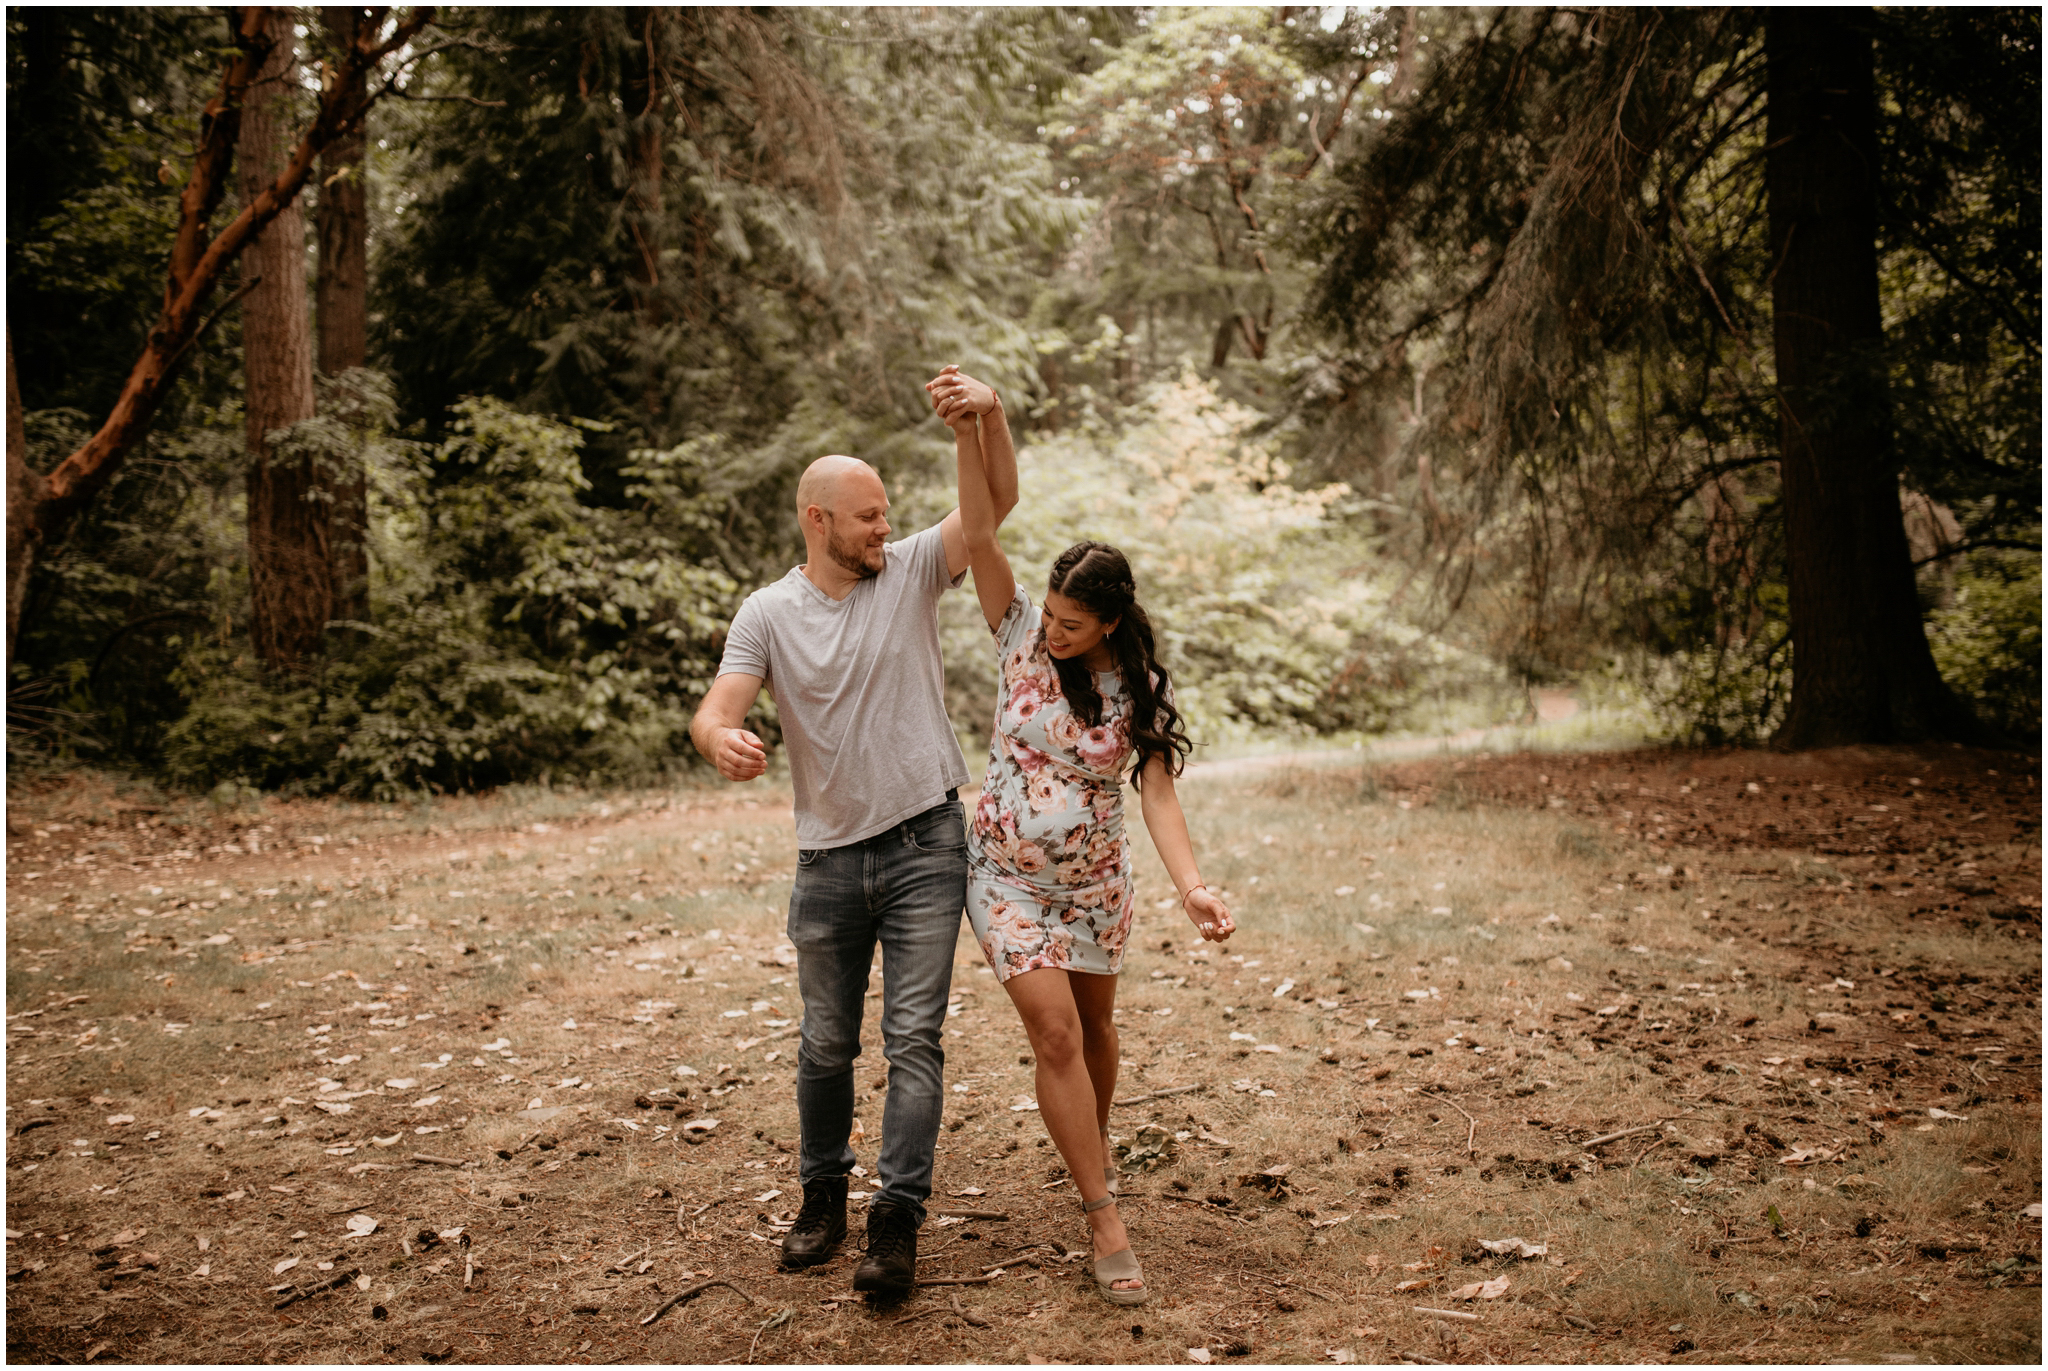 caitlin-jake-maternity-session-seattle-portrait-photographer-019.jpg